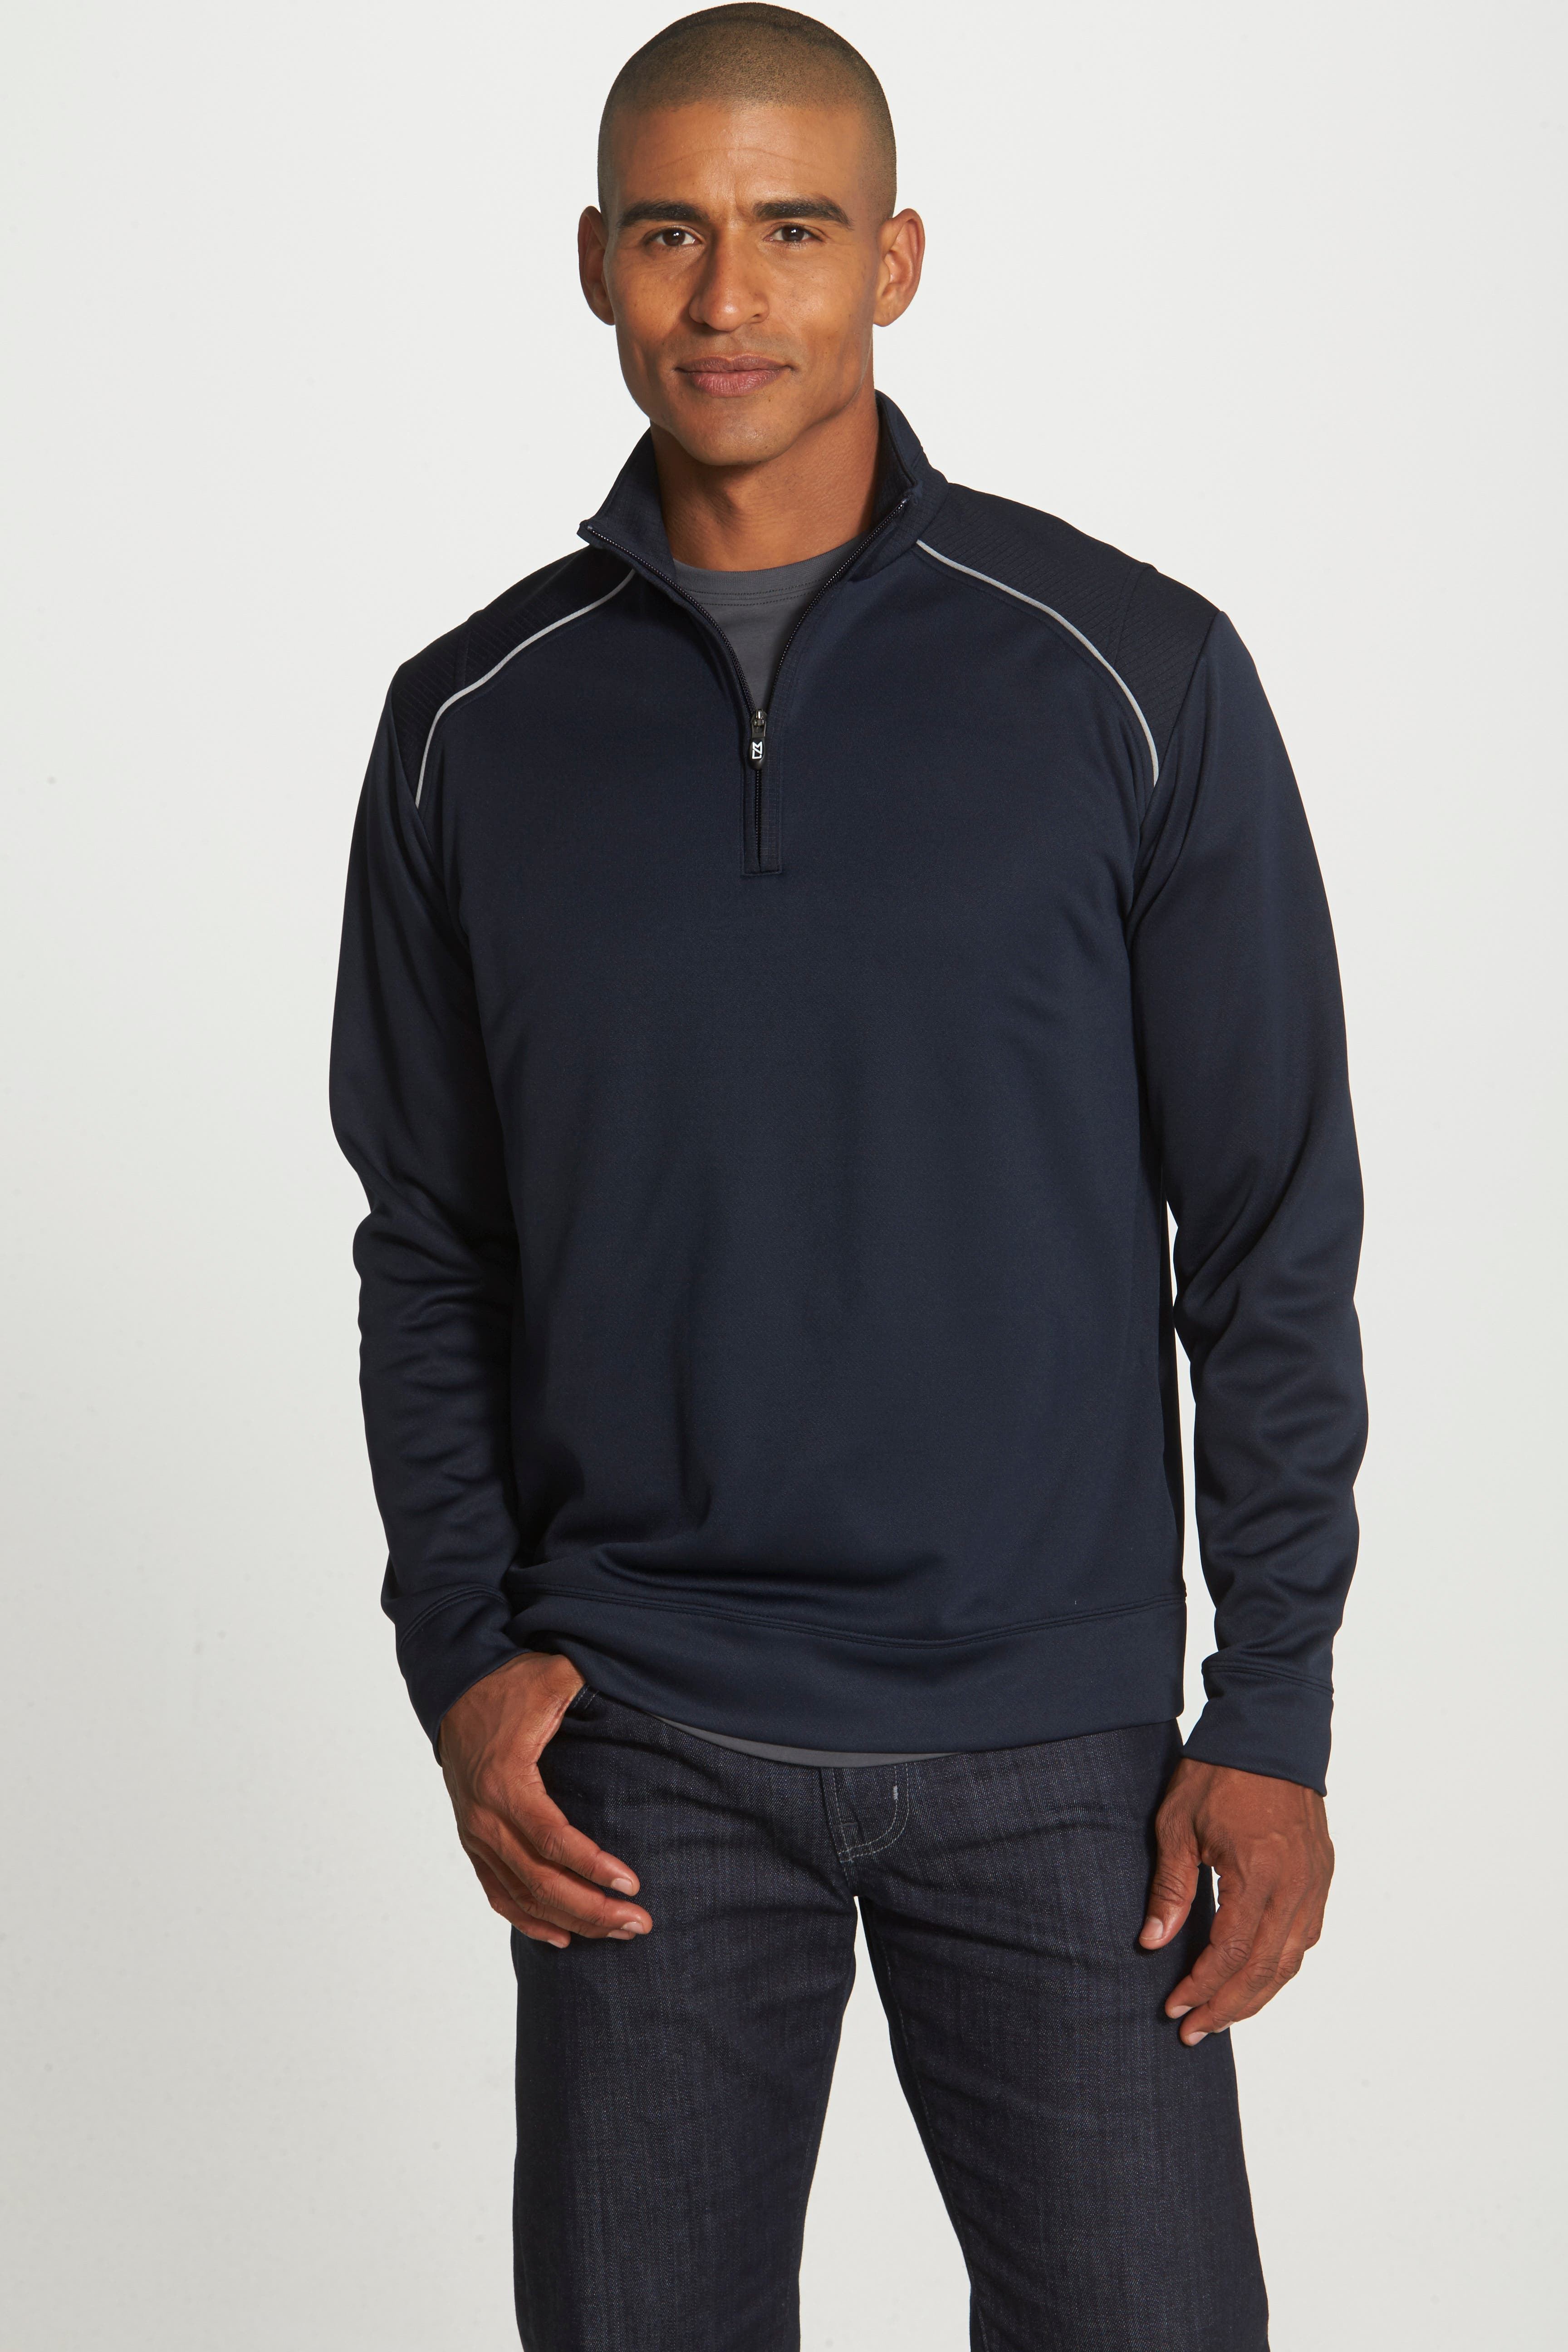 Ridge WeatherTec Wind & Water Resistant Pullover,                             Alternate thumbnail 6, color,                             NAVY BLUE